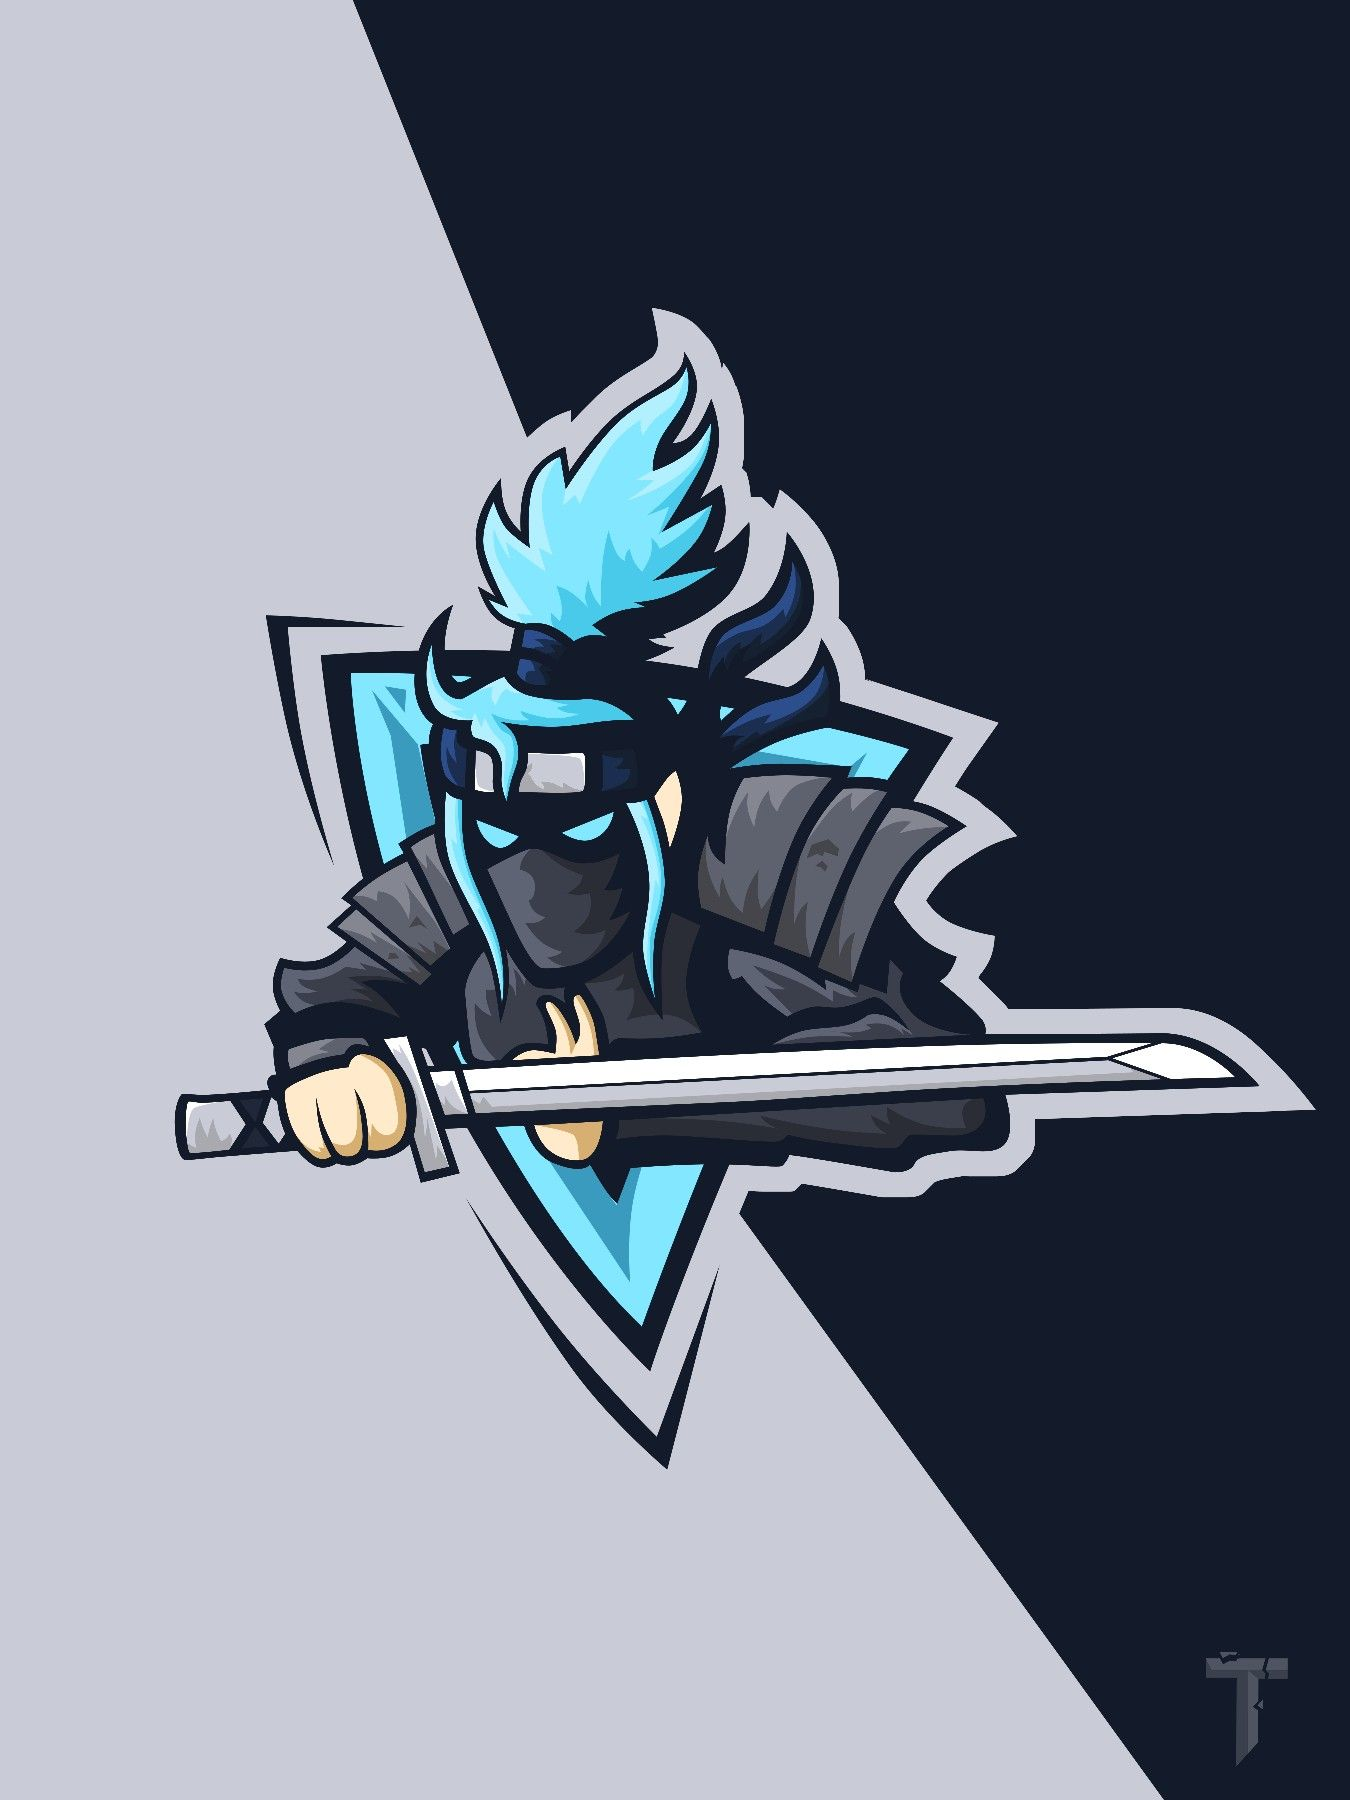 Shinobi mascot logo backgroung esports wallpaper png